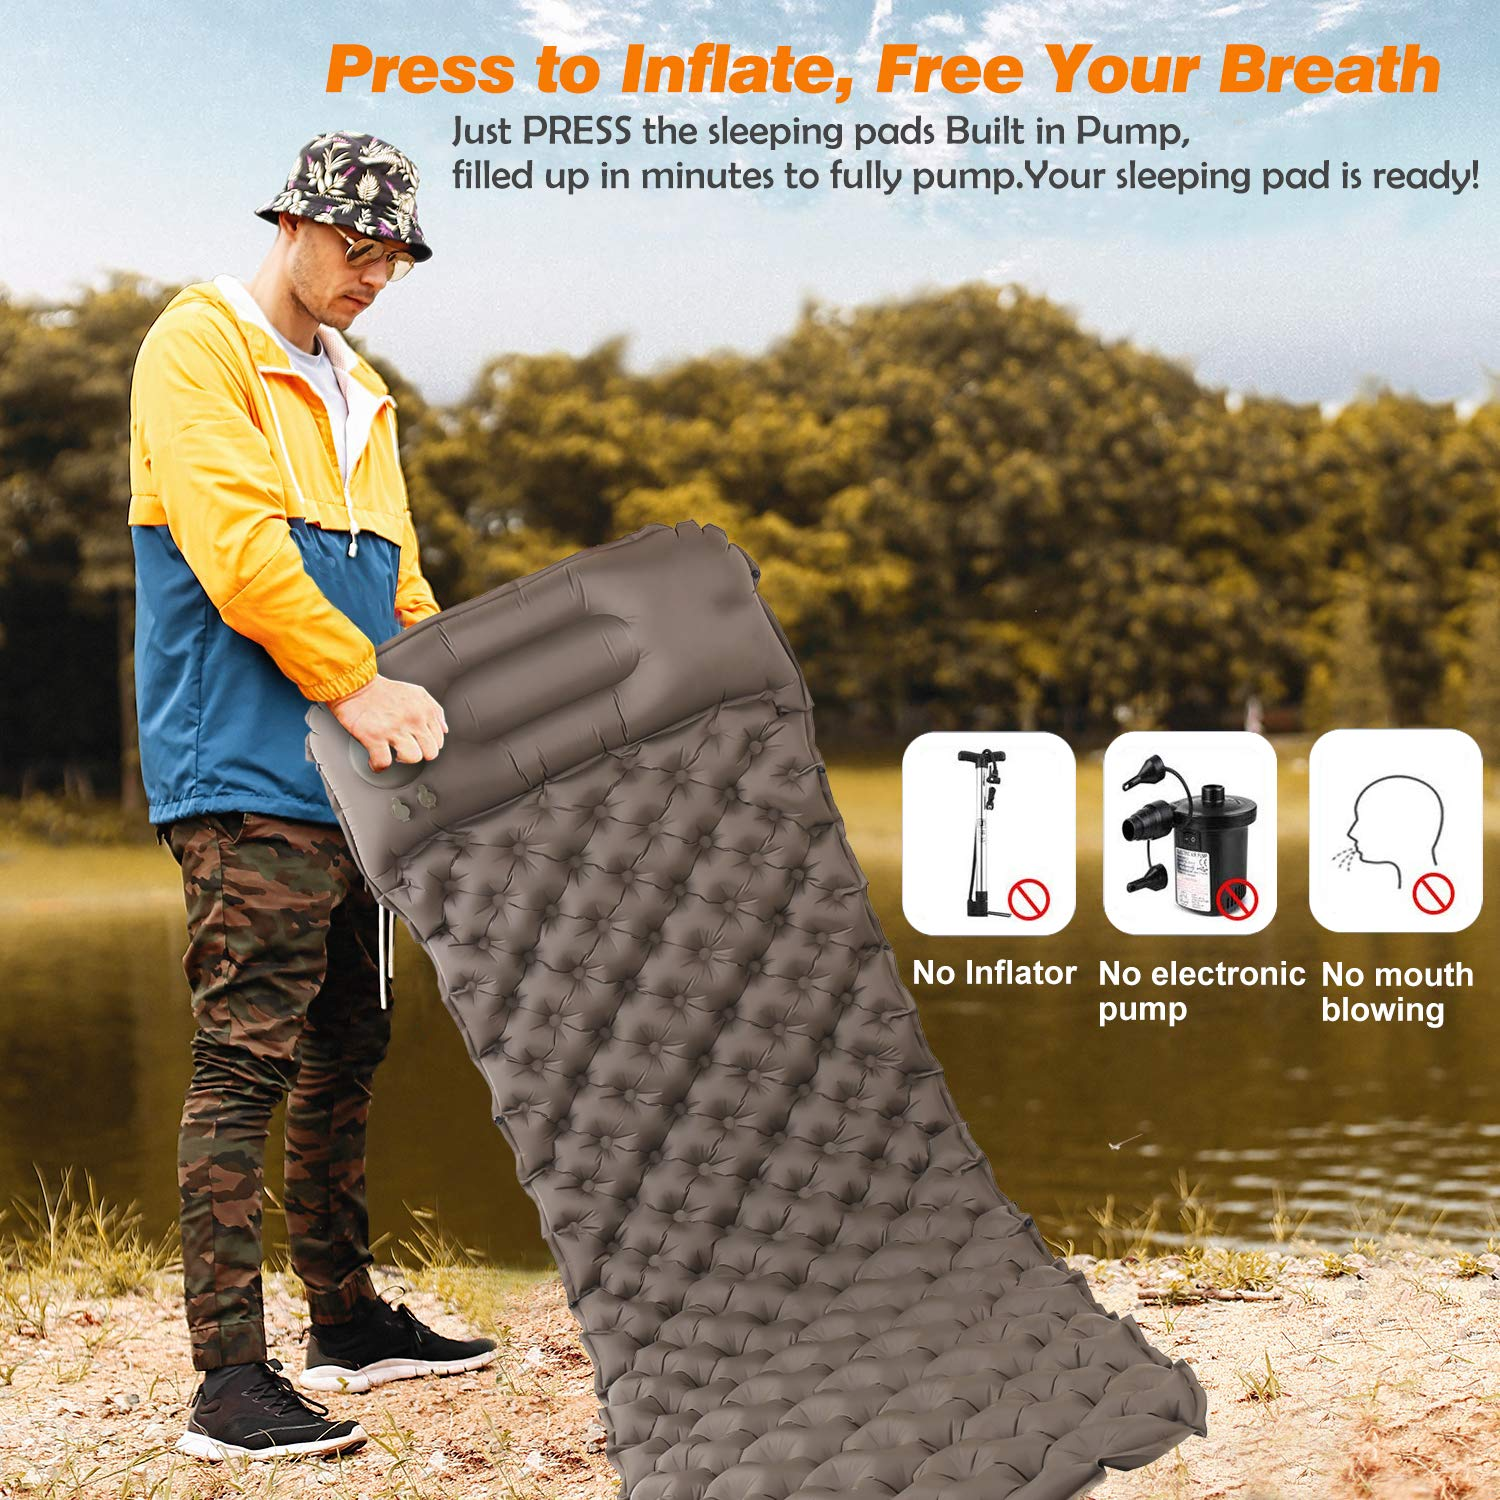 Traveling KAXYEW Inflatable Sleeping Pad Hiking Camping Pads for Sleeping with Built-in Pump Upgraded Sleeping Mats with Pillow for Backpacking Durable Waterproof Compact Ultralight Hiking Pad